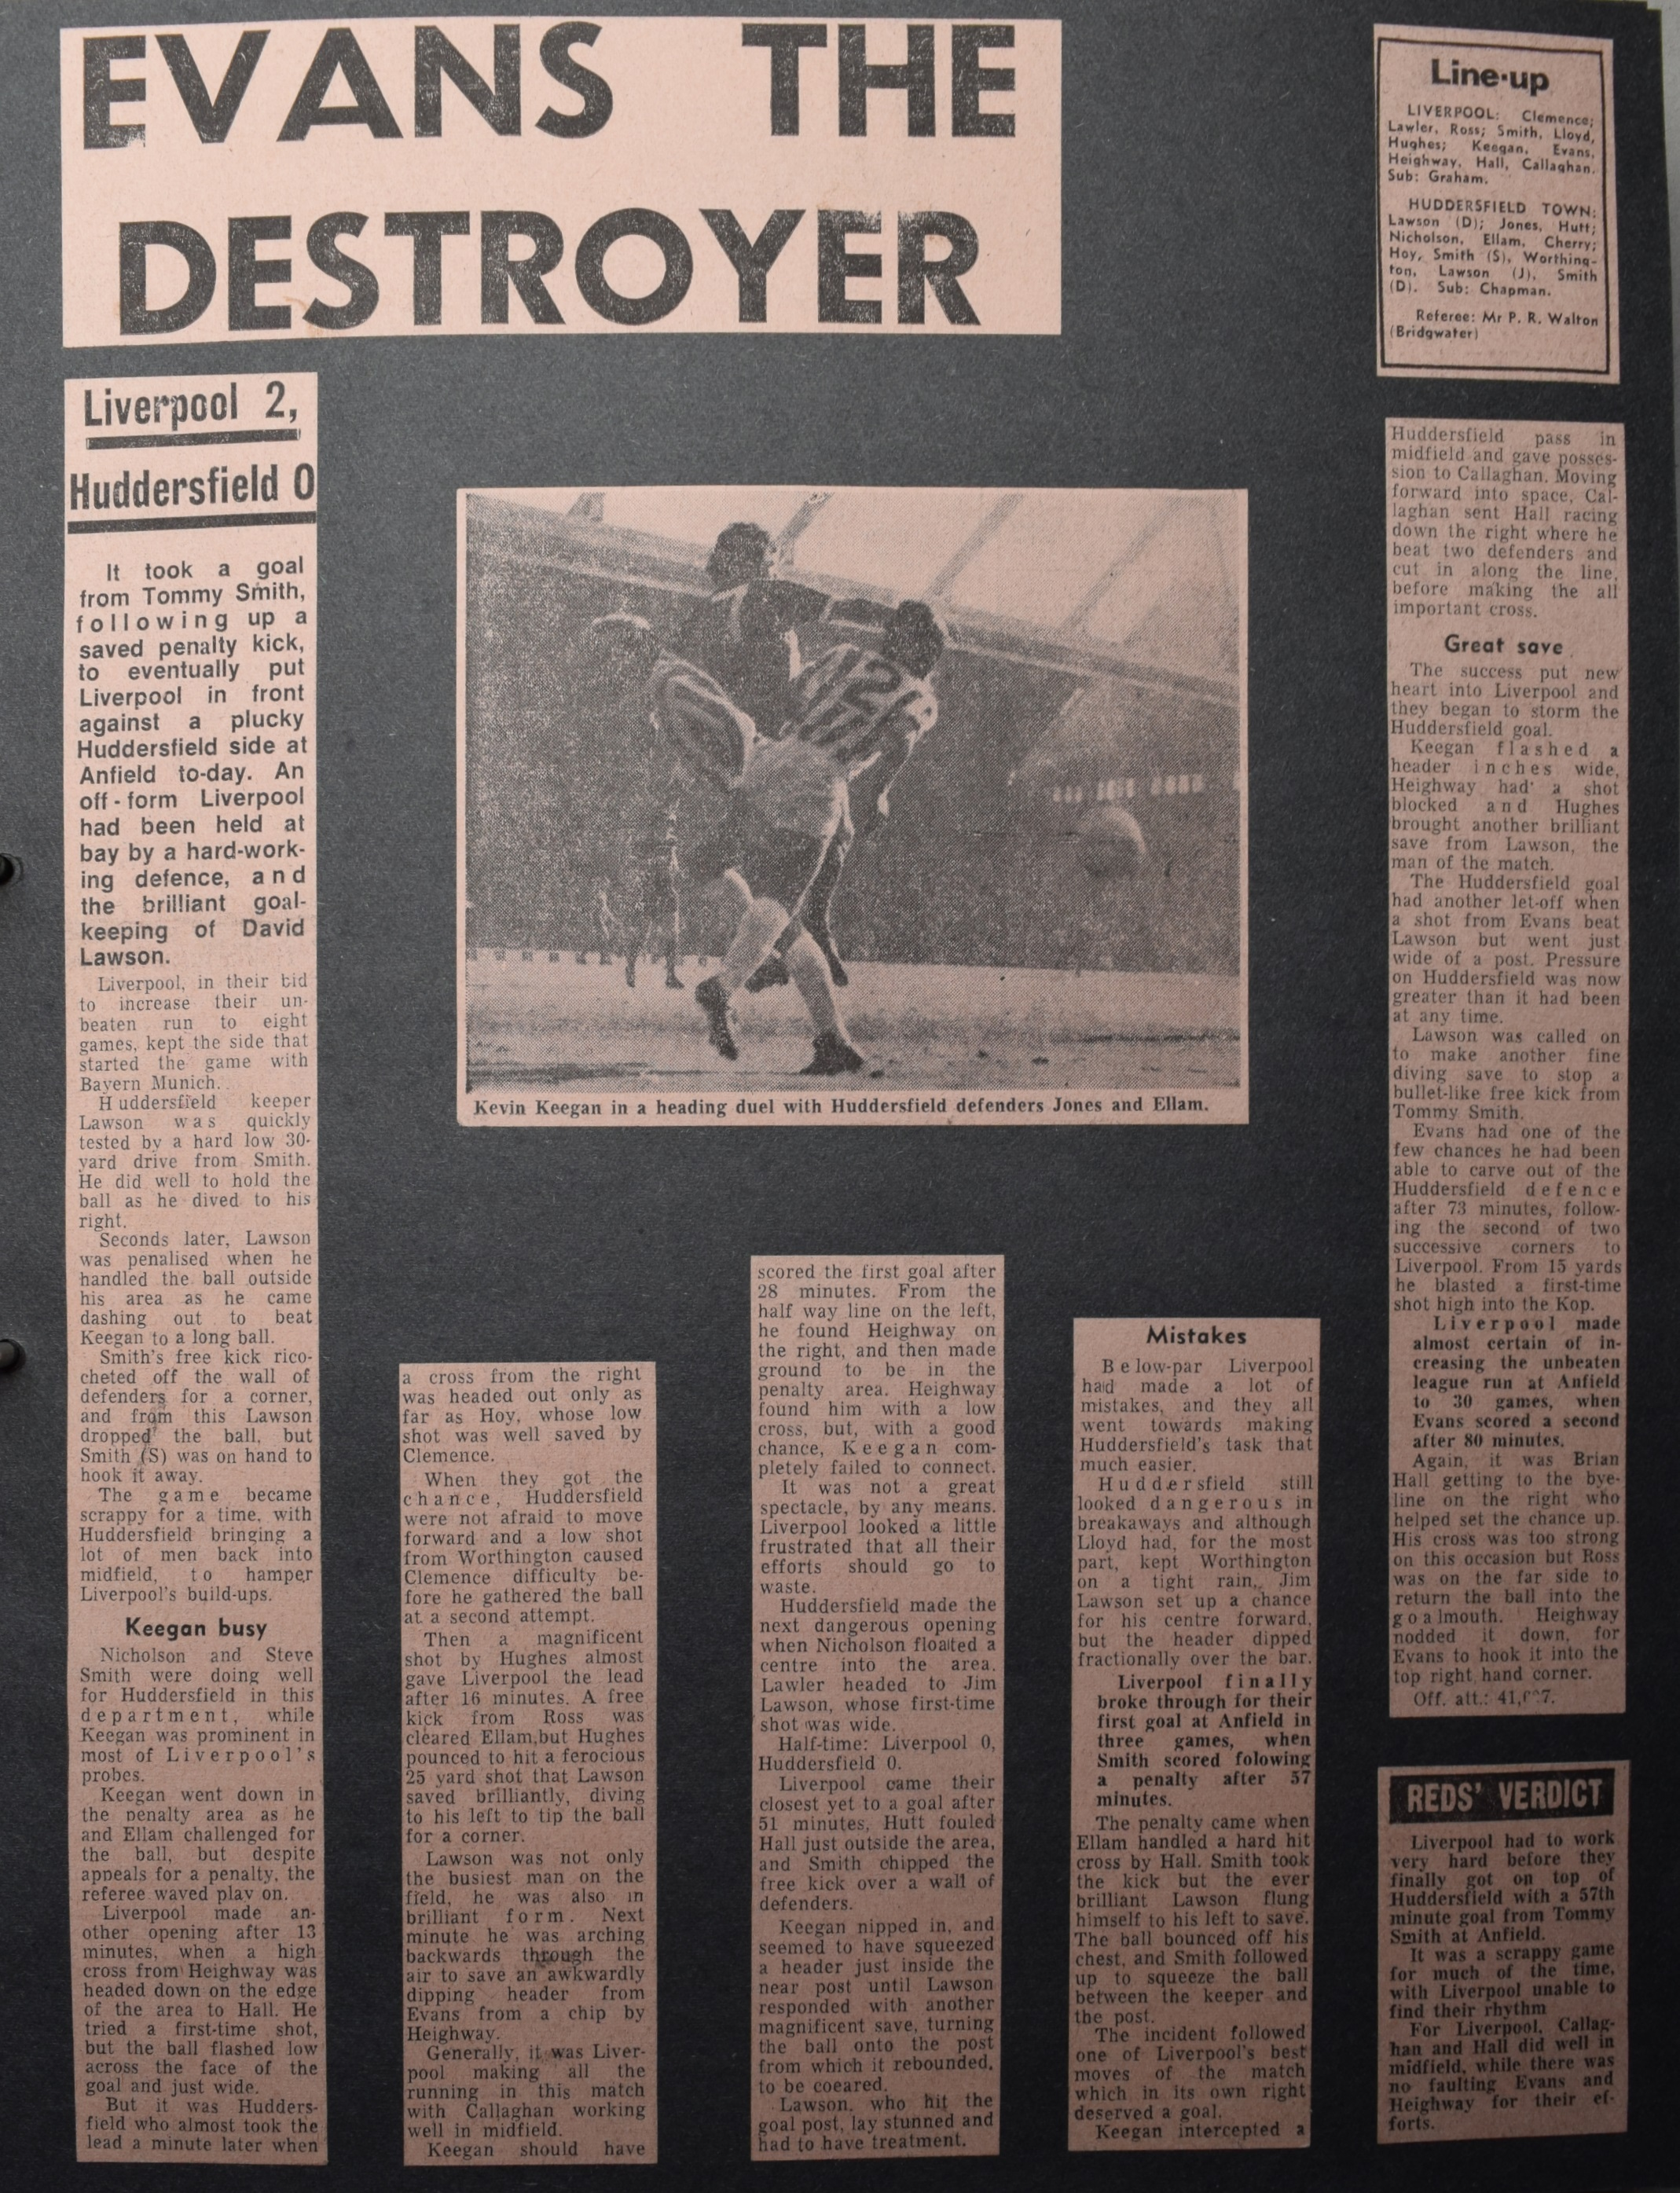 Evans the destroyer - 23 October 1971